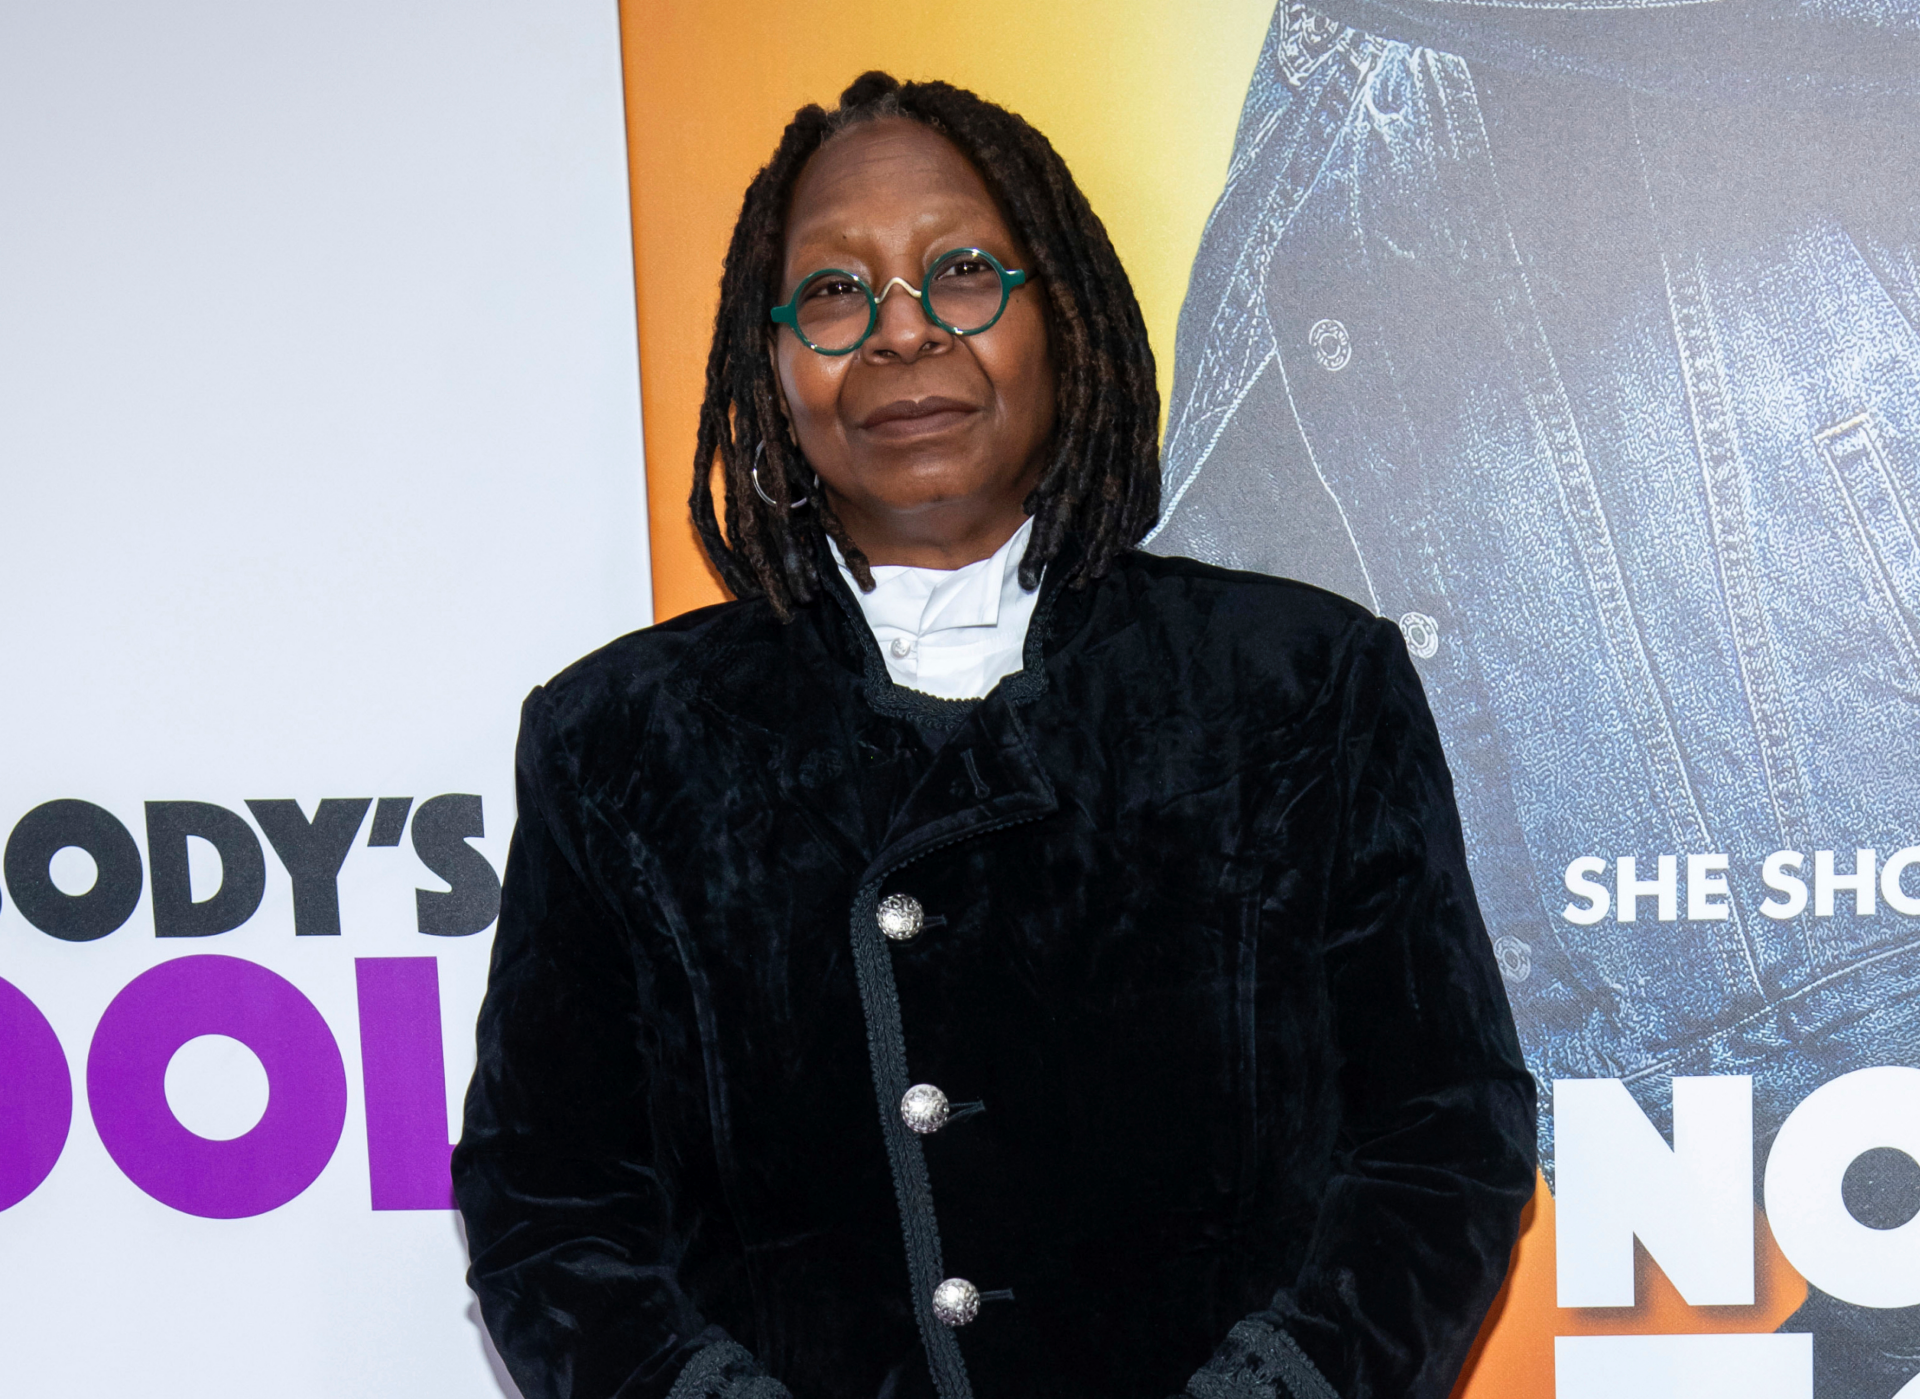 Whoopi Goldberg tries to link D-Day with immigration, says it's what soldiers 'fought for'